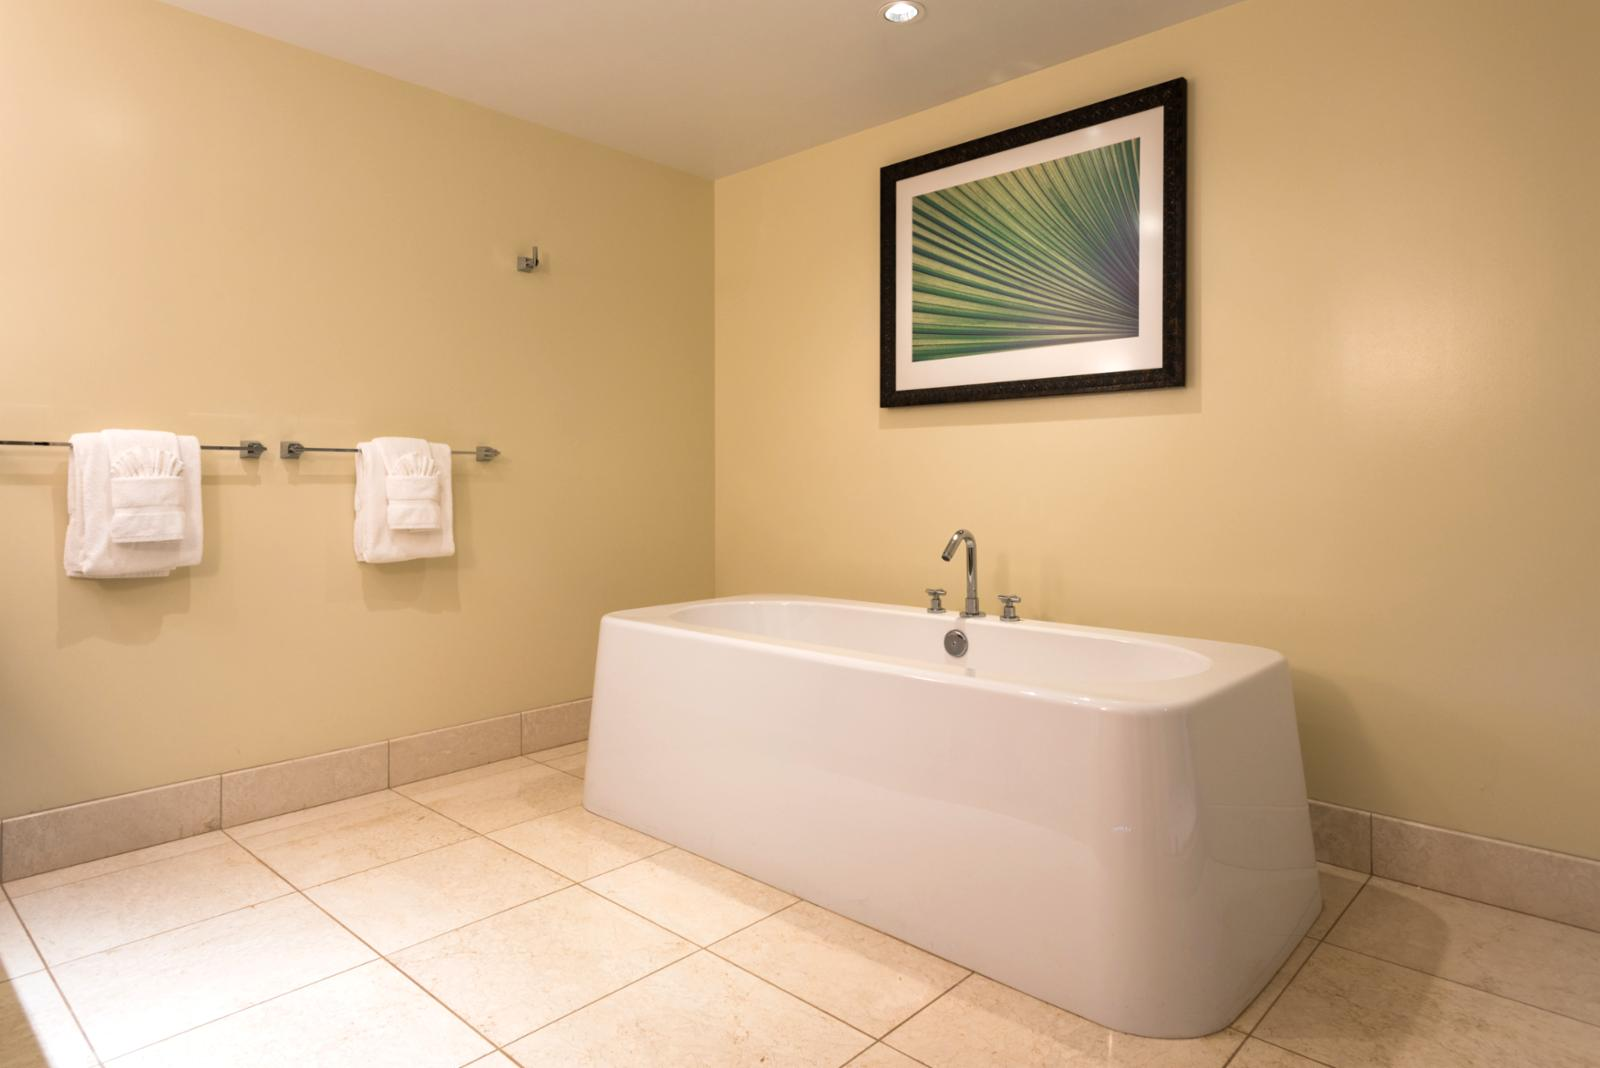 Relax in your own soaking tub